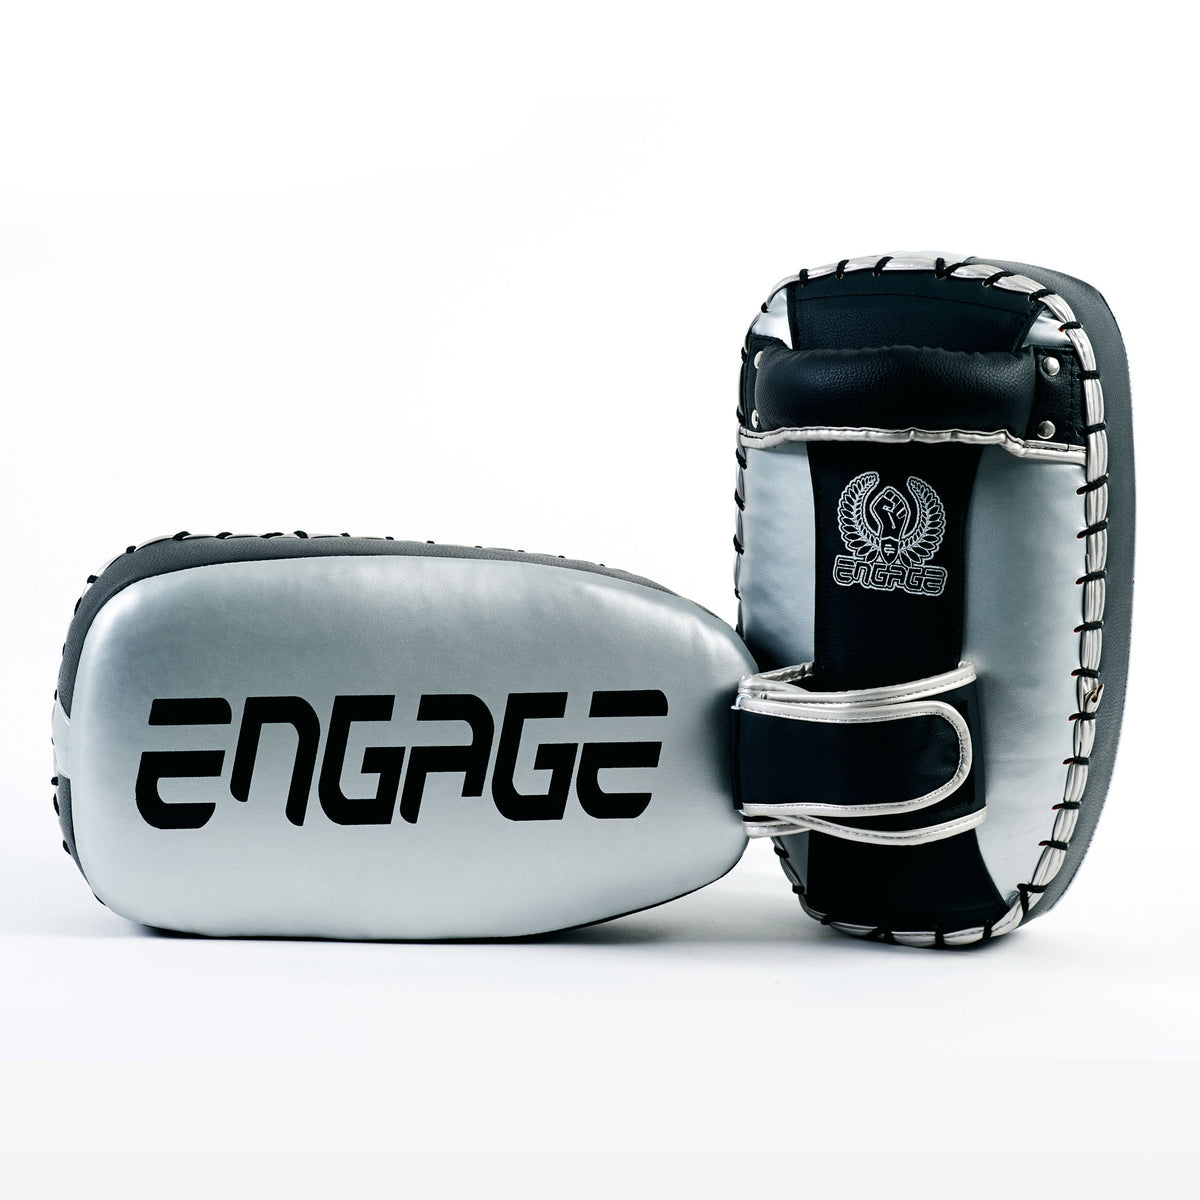 Engage Thai Pads Thai Pads Engage MMA UFC fightwear online shop Australia